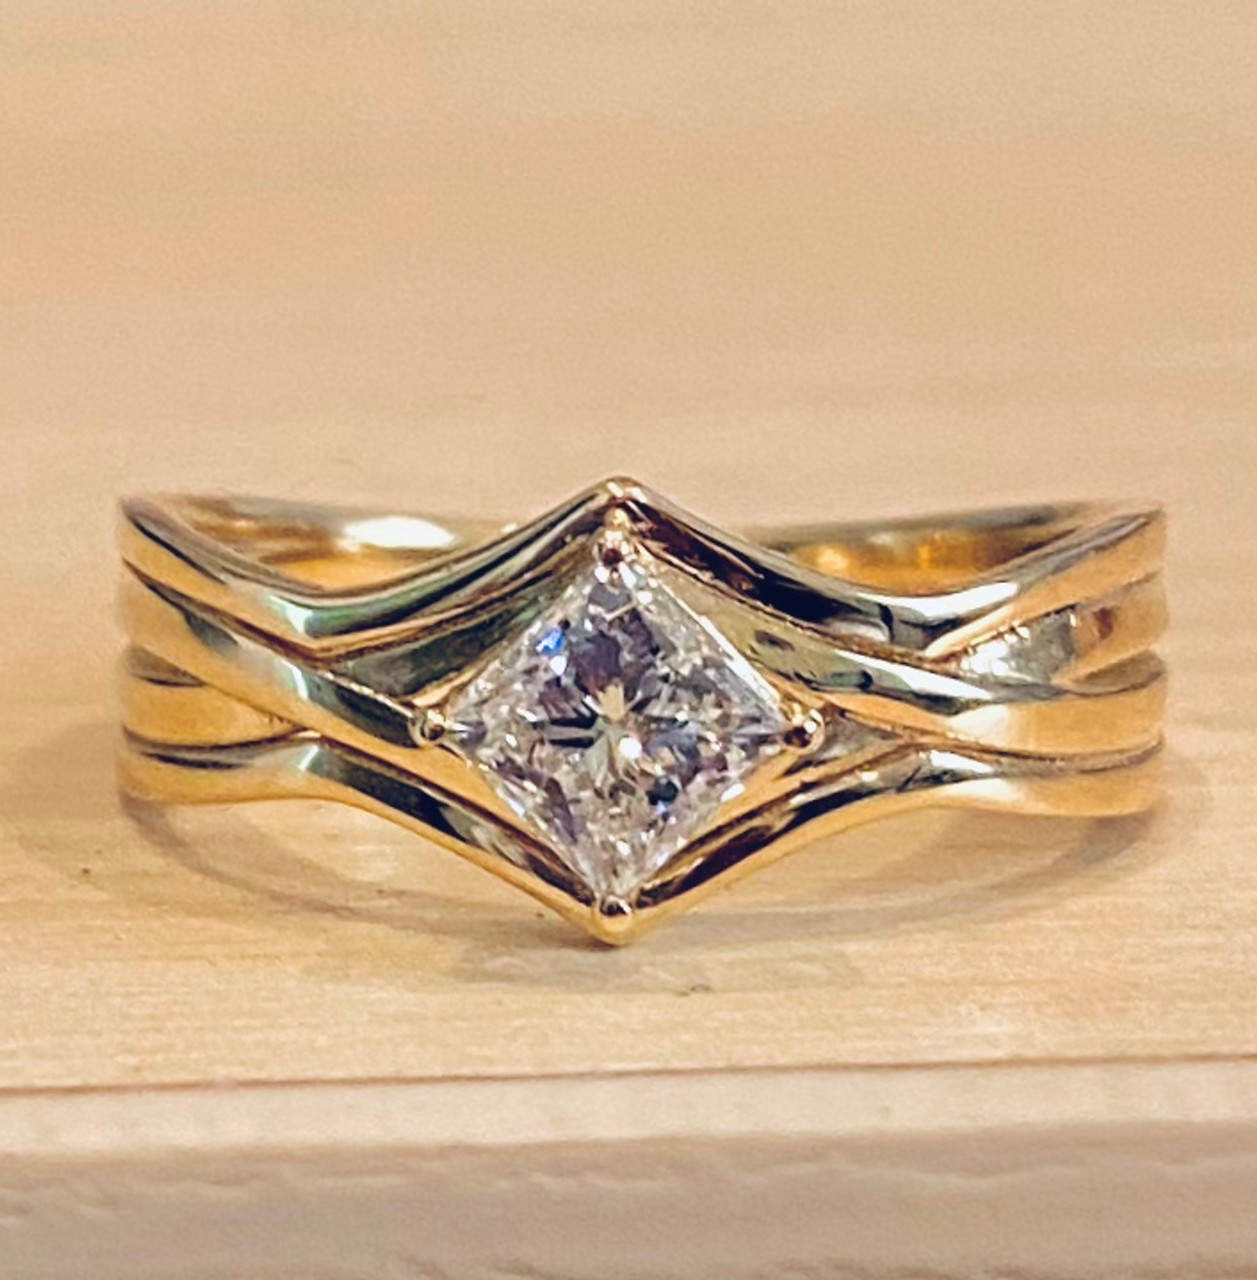 Bridal Jewelry Trends- Rings and More....